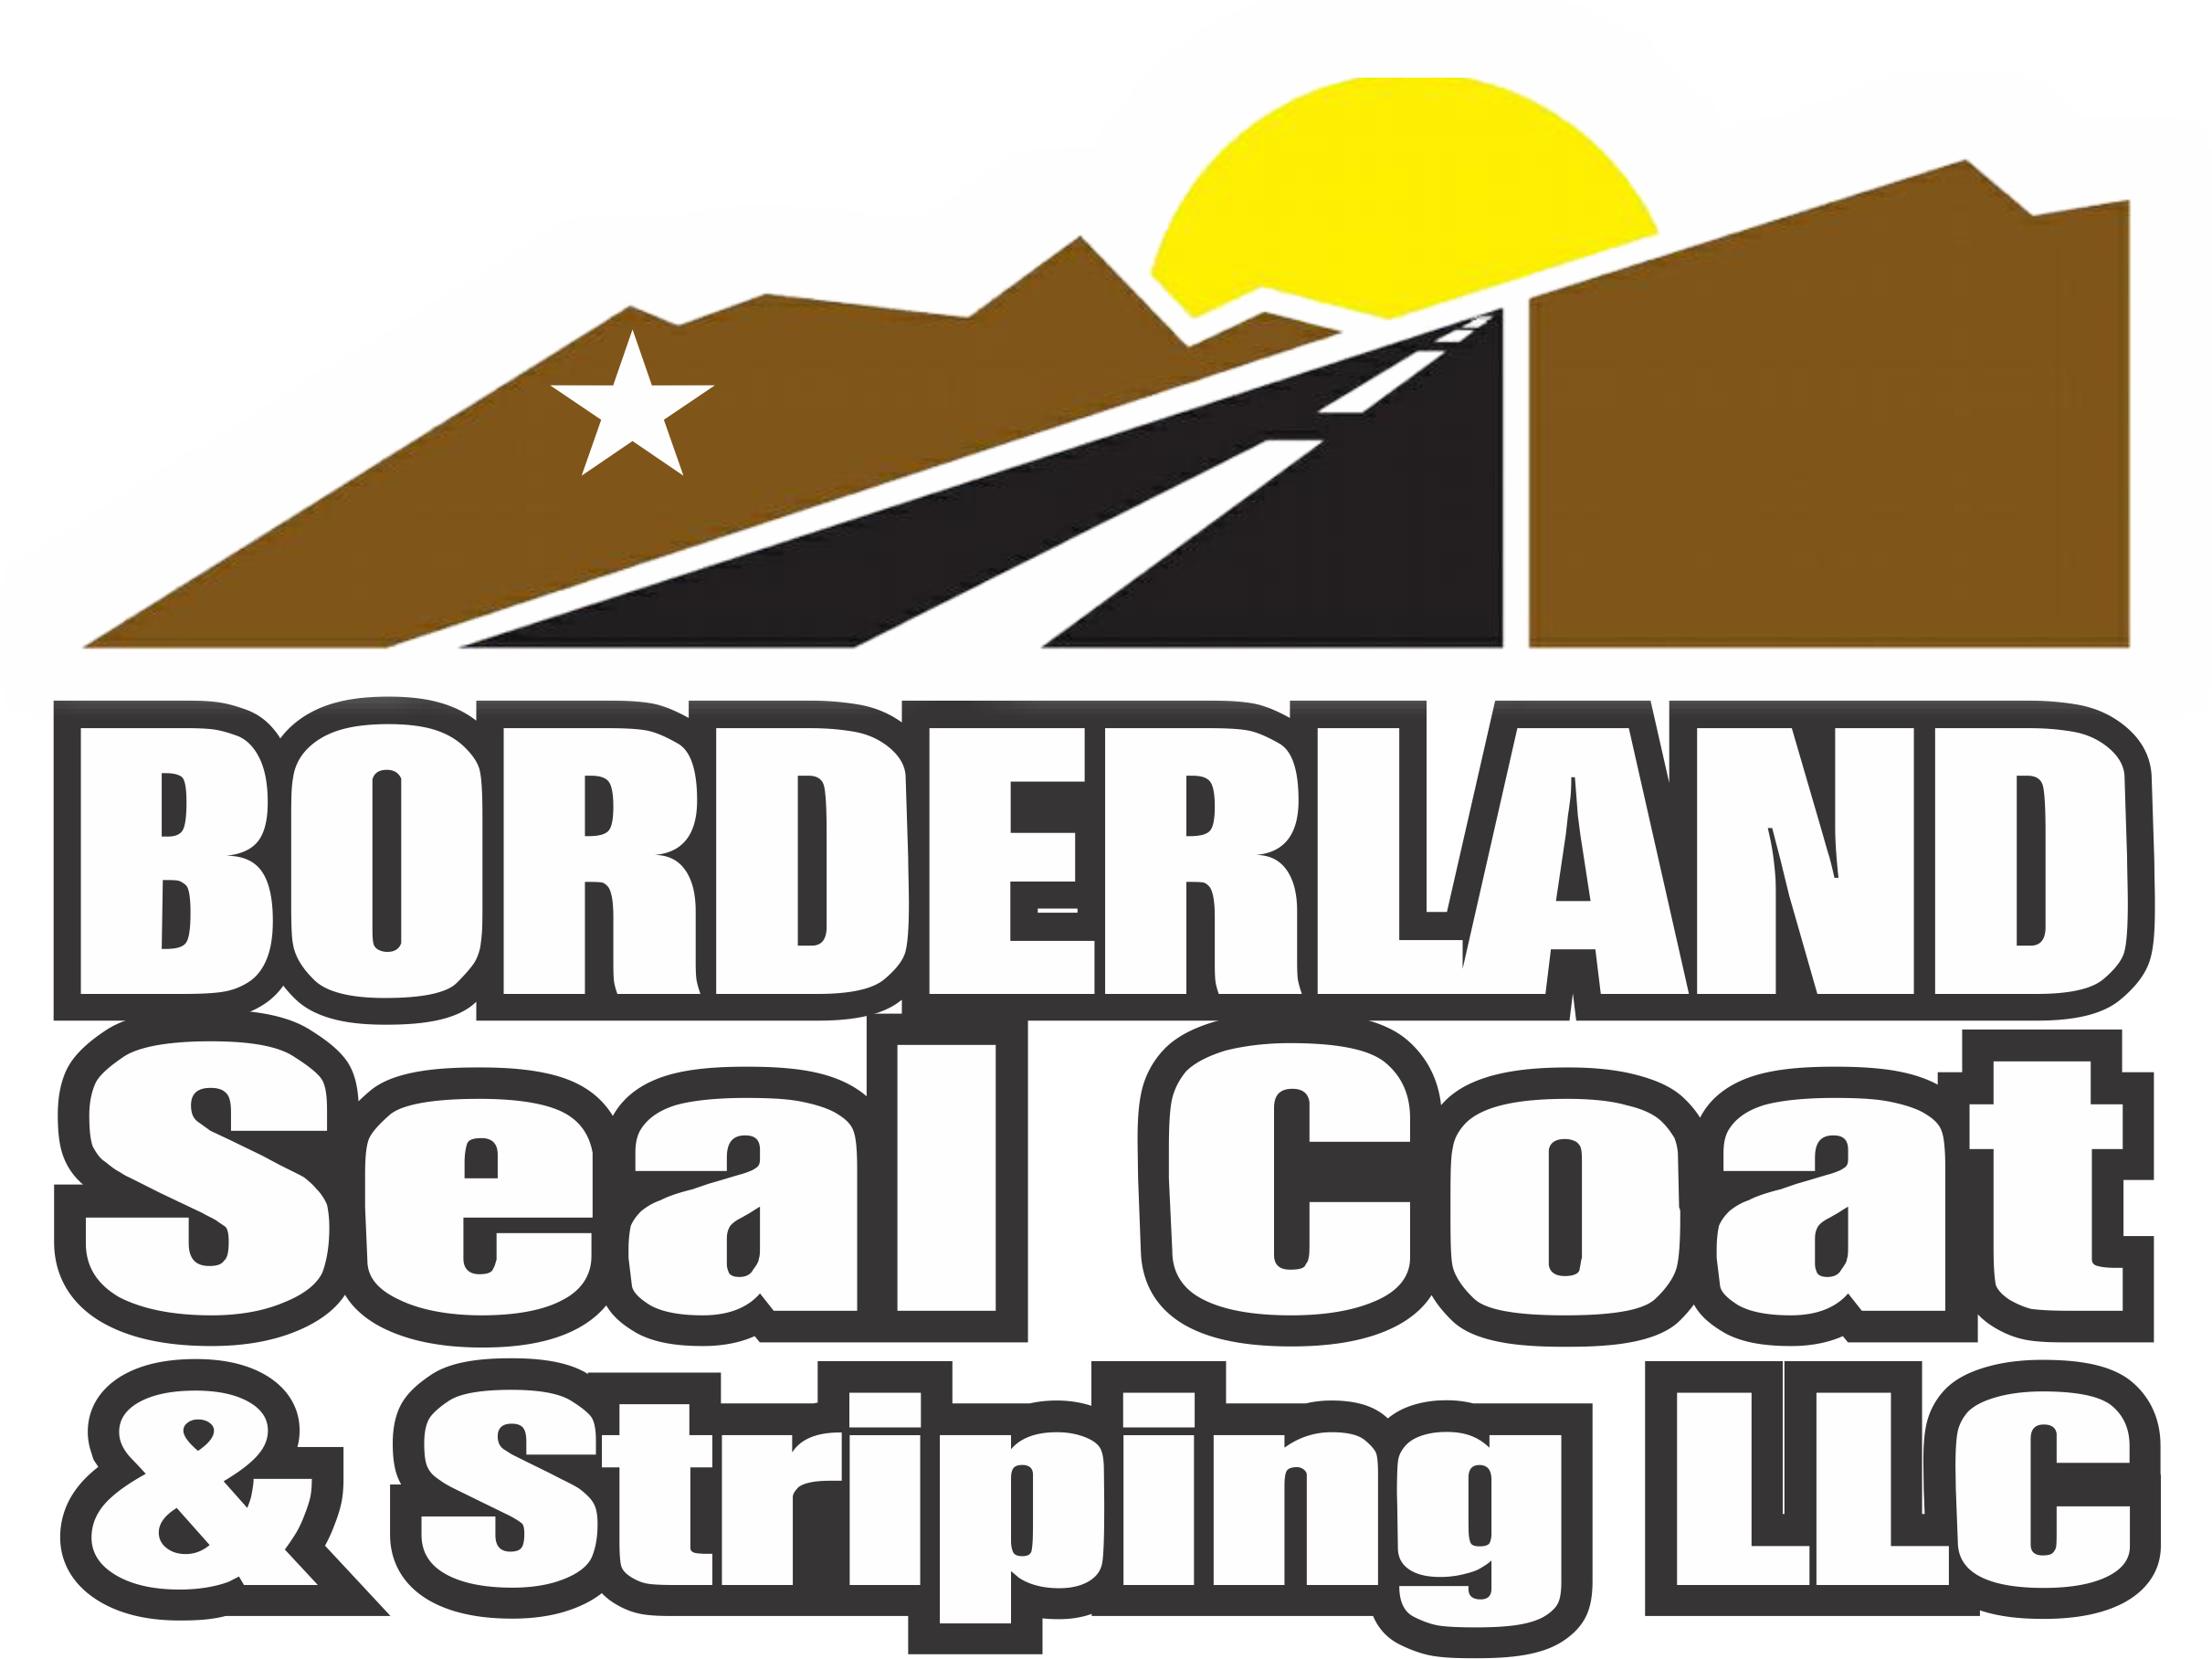 Borderland Sealcoat & Striping LLC